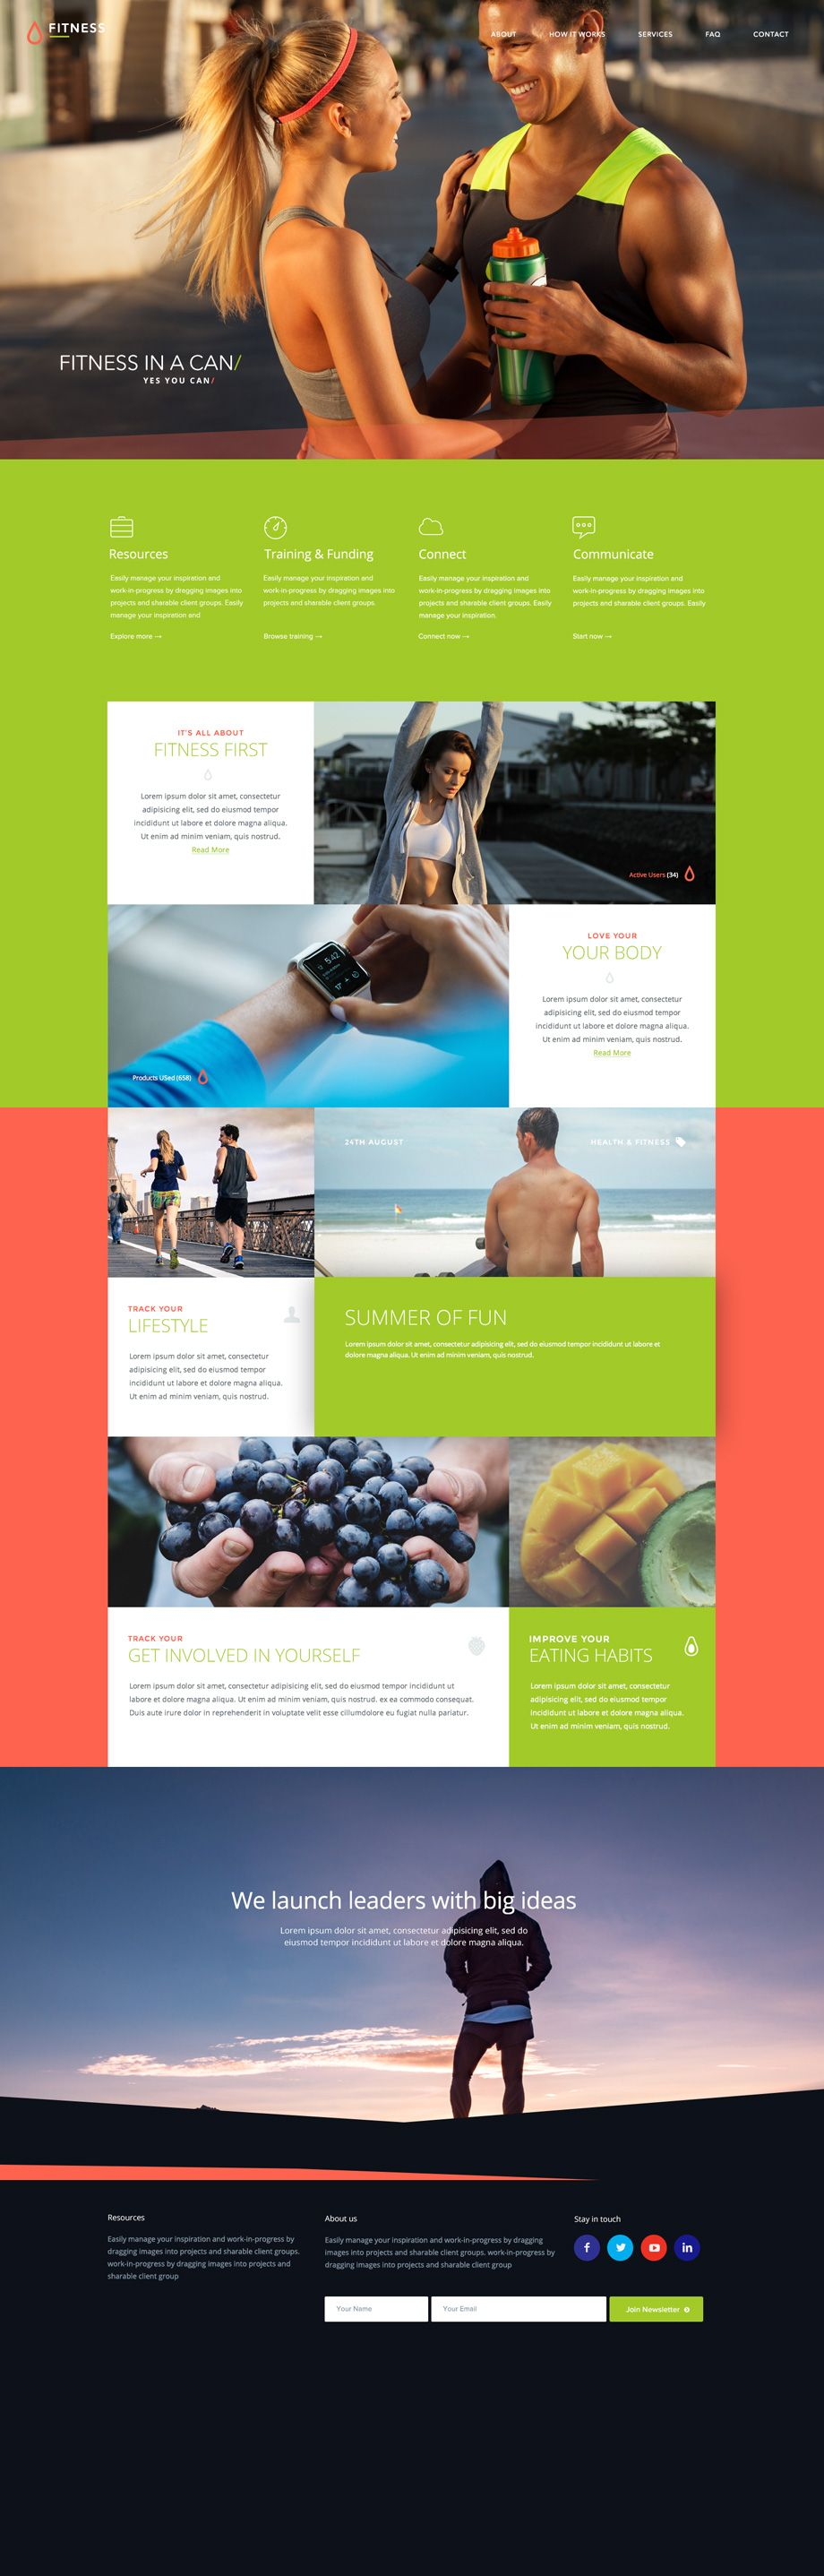 free download fitness free photoshop psd template web design free download fitness free photoshop psd template layout design page design website maxwellsz